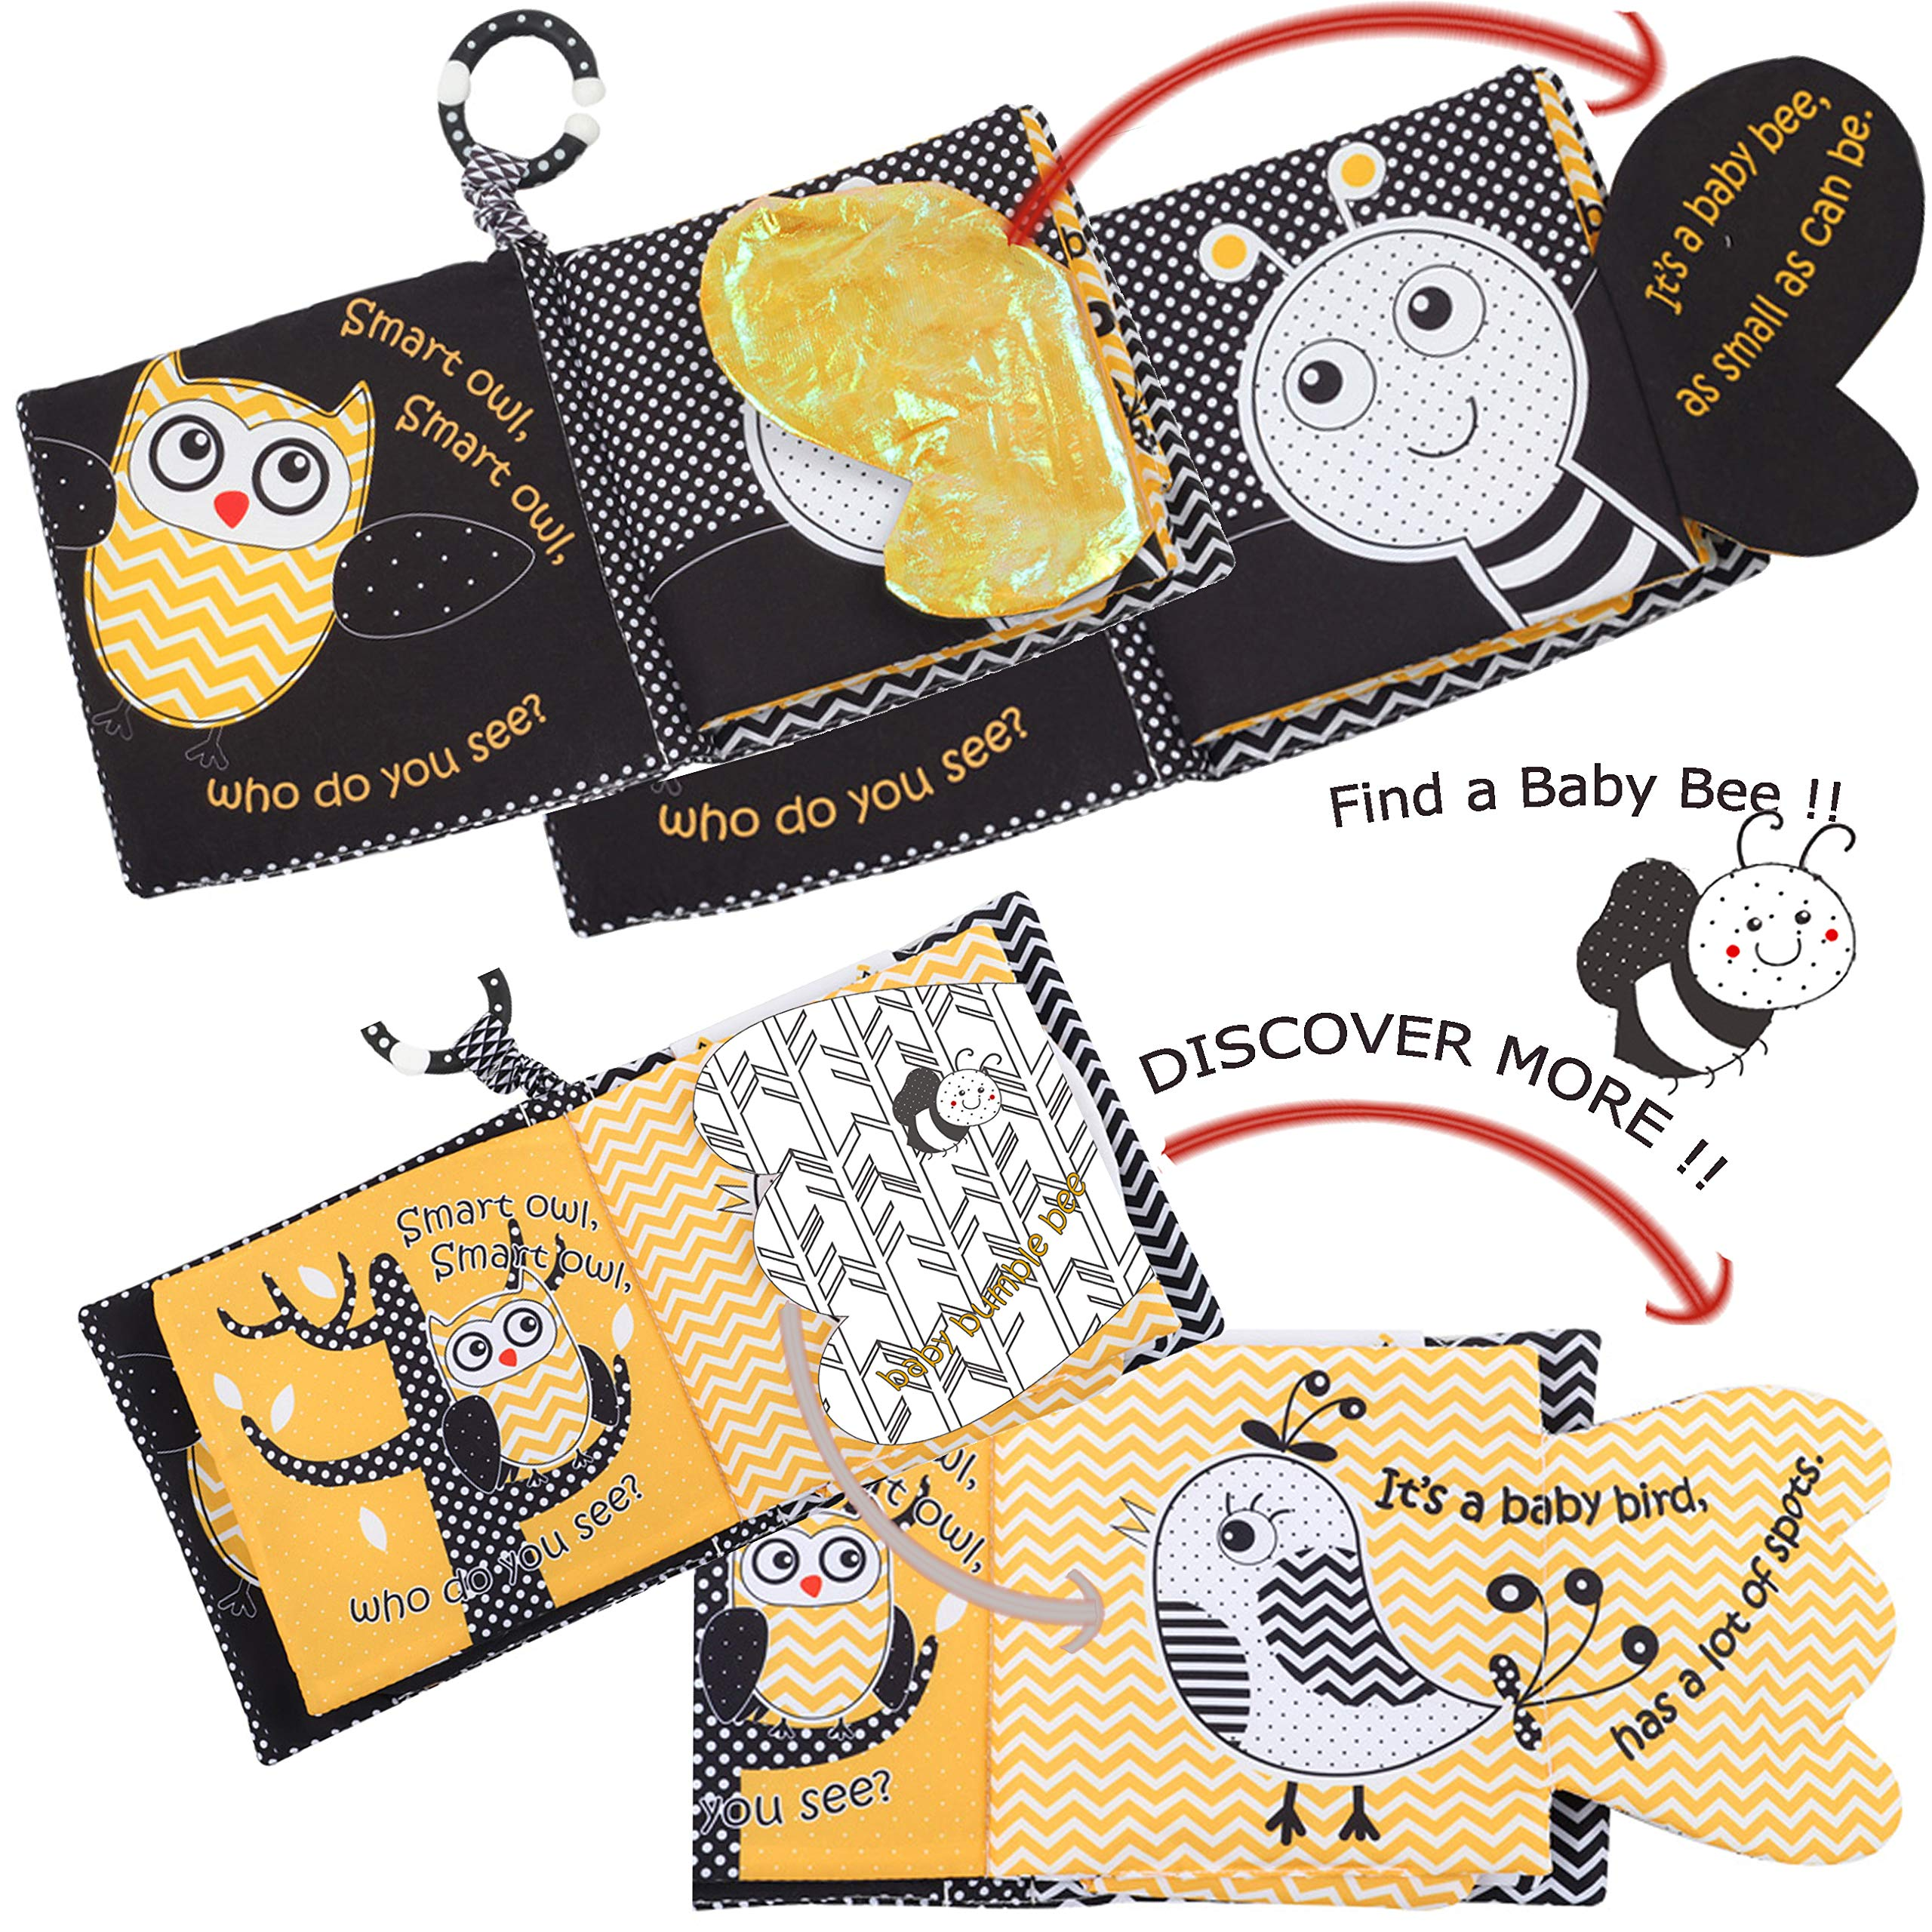 Soft Baby Books Crinkle Peek A Boo Forest Animal Cloth Books For Infants,Babies,Owl Bee Soft Activity Infant Toys Books For Newborns,Tails Books For Toddlers,Teething Rings 1 Year Old Boys& GirlsKids